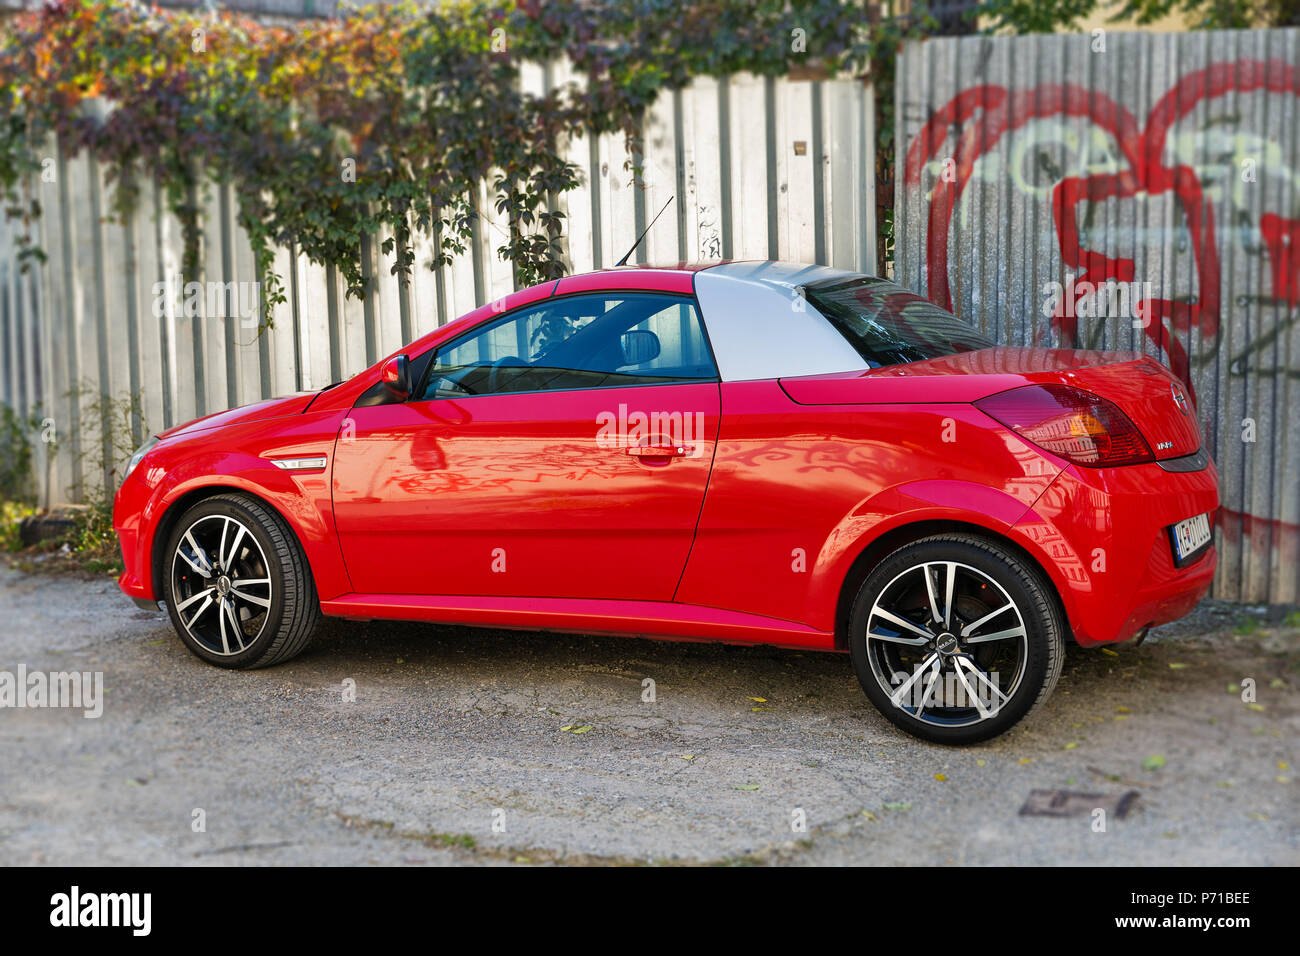 Kosice Slovakia October 02 2017 Red Luxury Coupe Opel Tigra Twintop Parked It Is A Two Seater Coupe Convertible With A Retractable Hardtop Opel Stock Photo Alamy